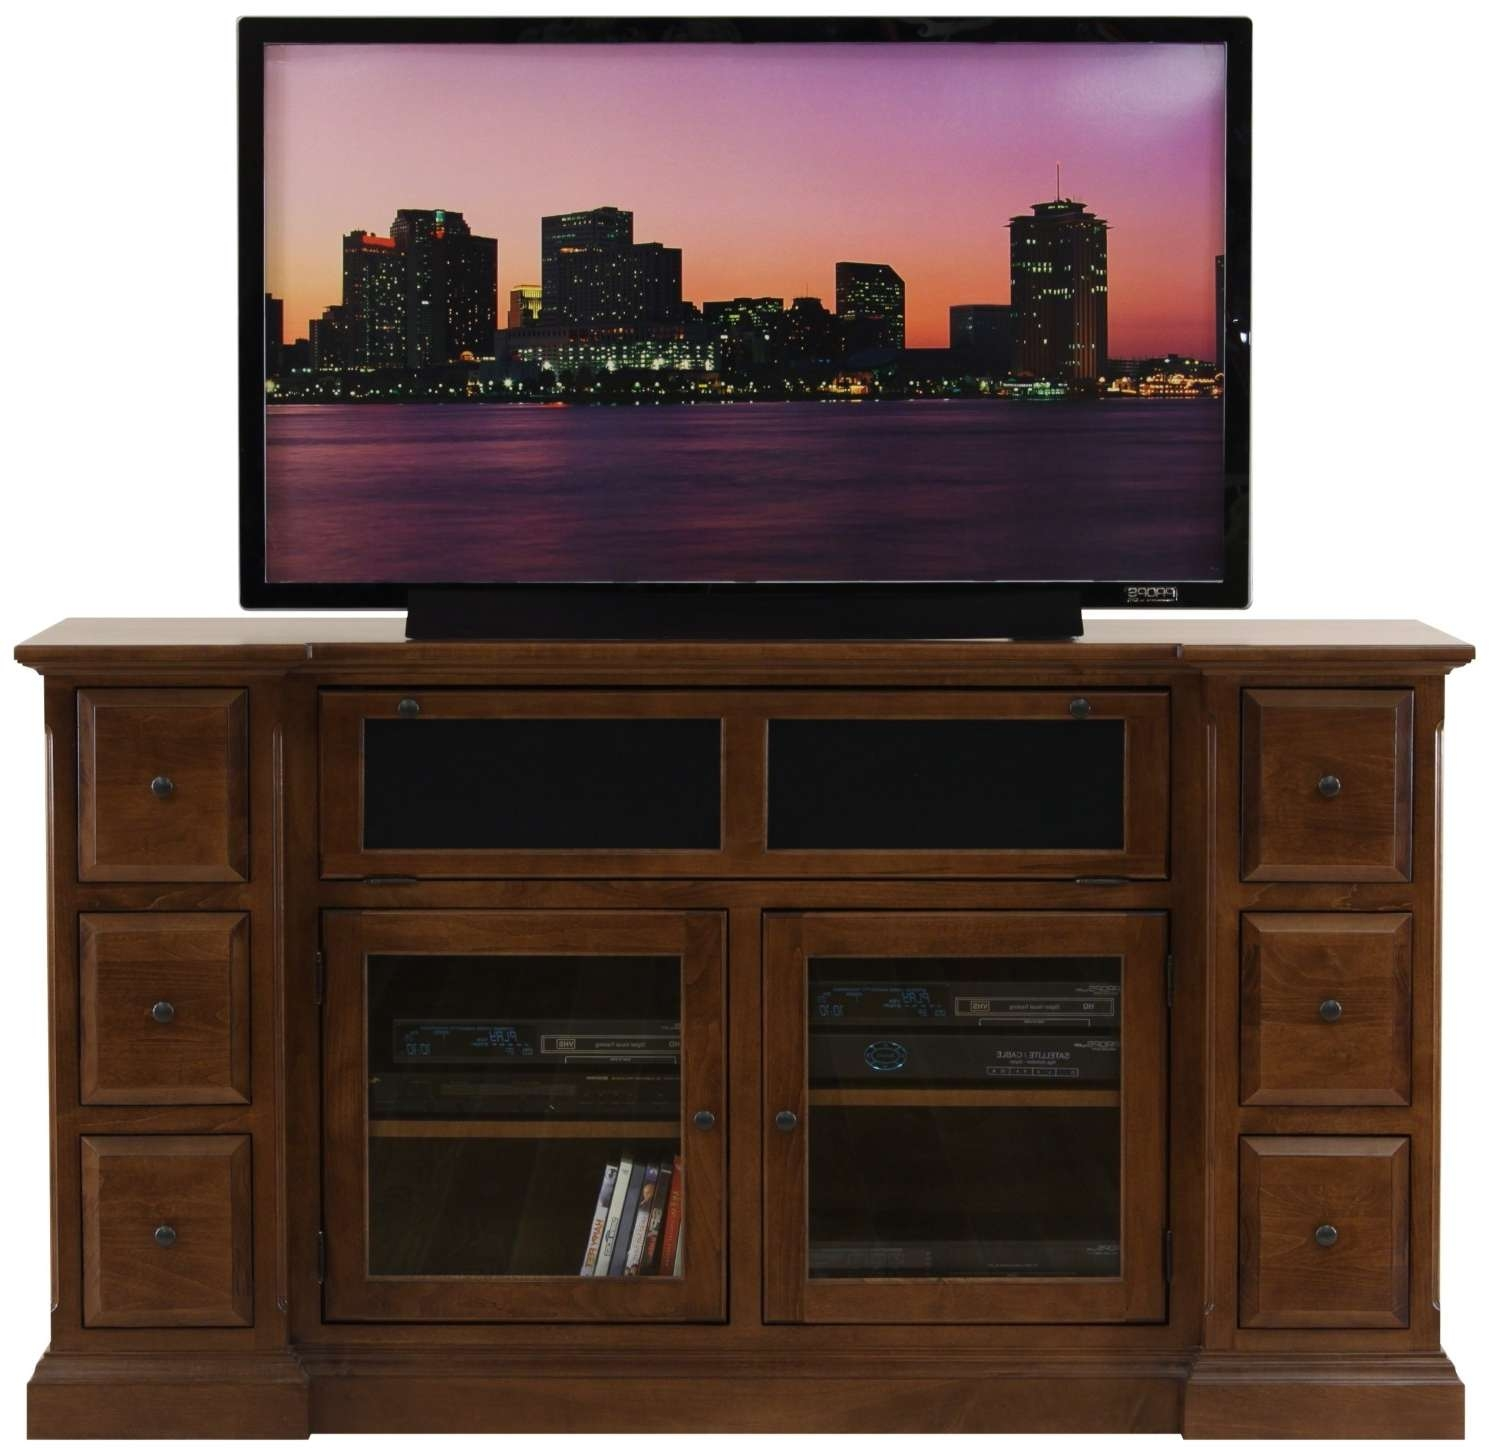 Brown Wooden Tv Stand With Storage With Glass Doors Combined With Inside Wooden Tv Cabinets With Glass Doors (View 3 of 20)